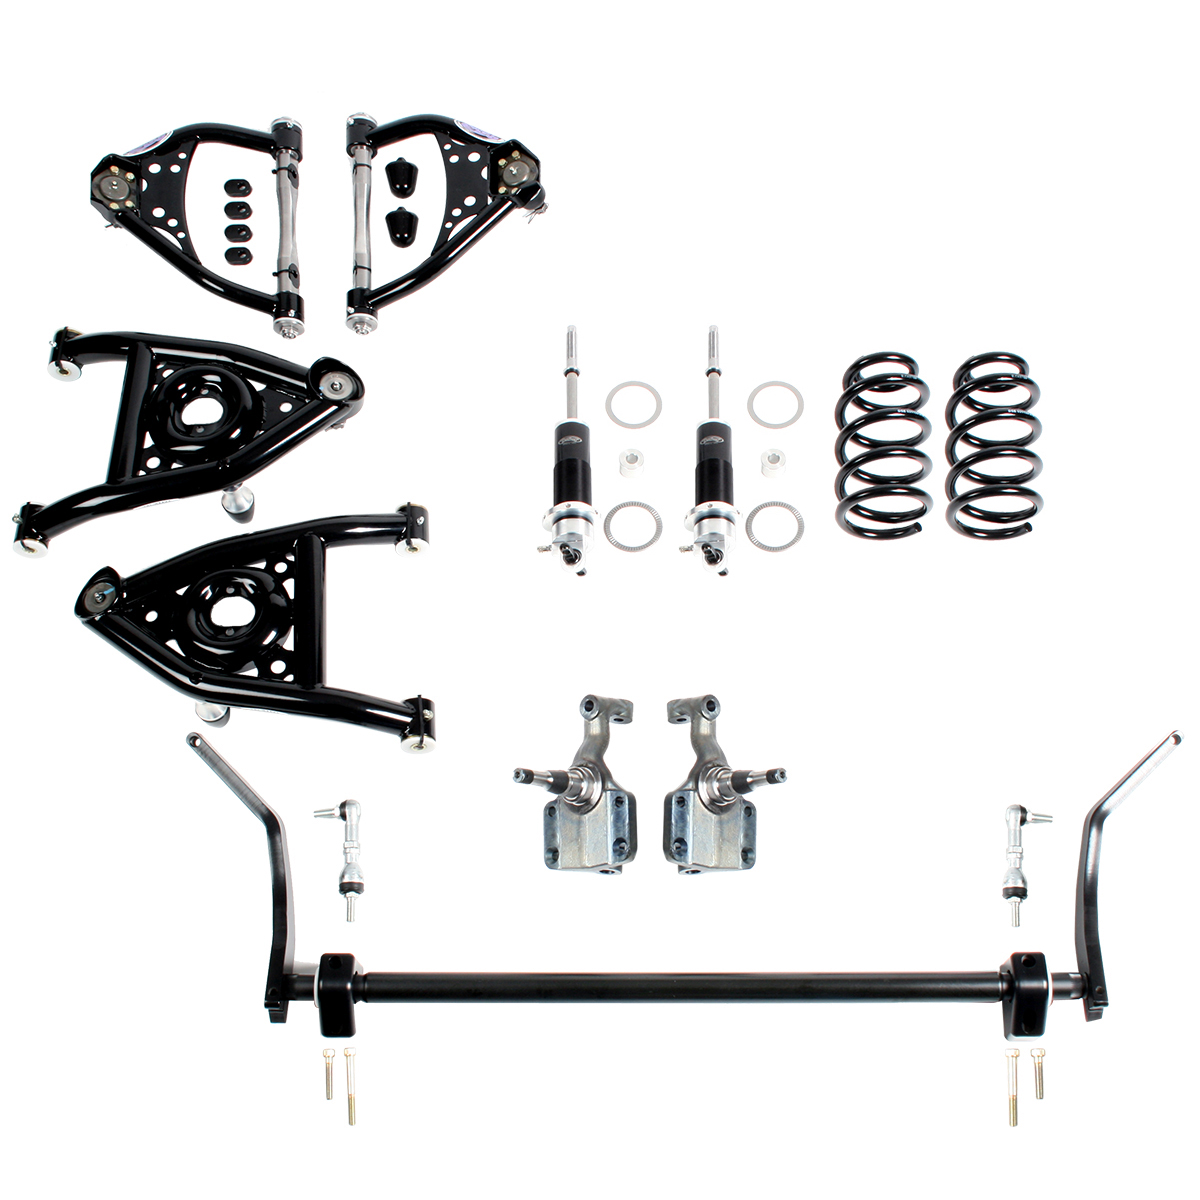 Detroit Speed  Speed Kit 2 Front Suspension Kit with Splined Sway Bar Single Adjustable Shocks 1964-1966 A-Body SBC LS